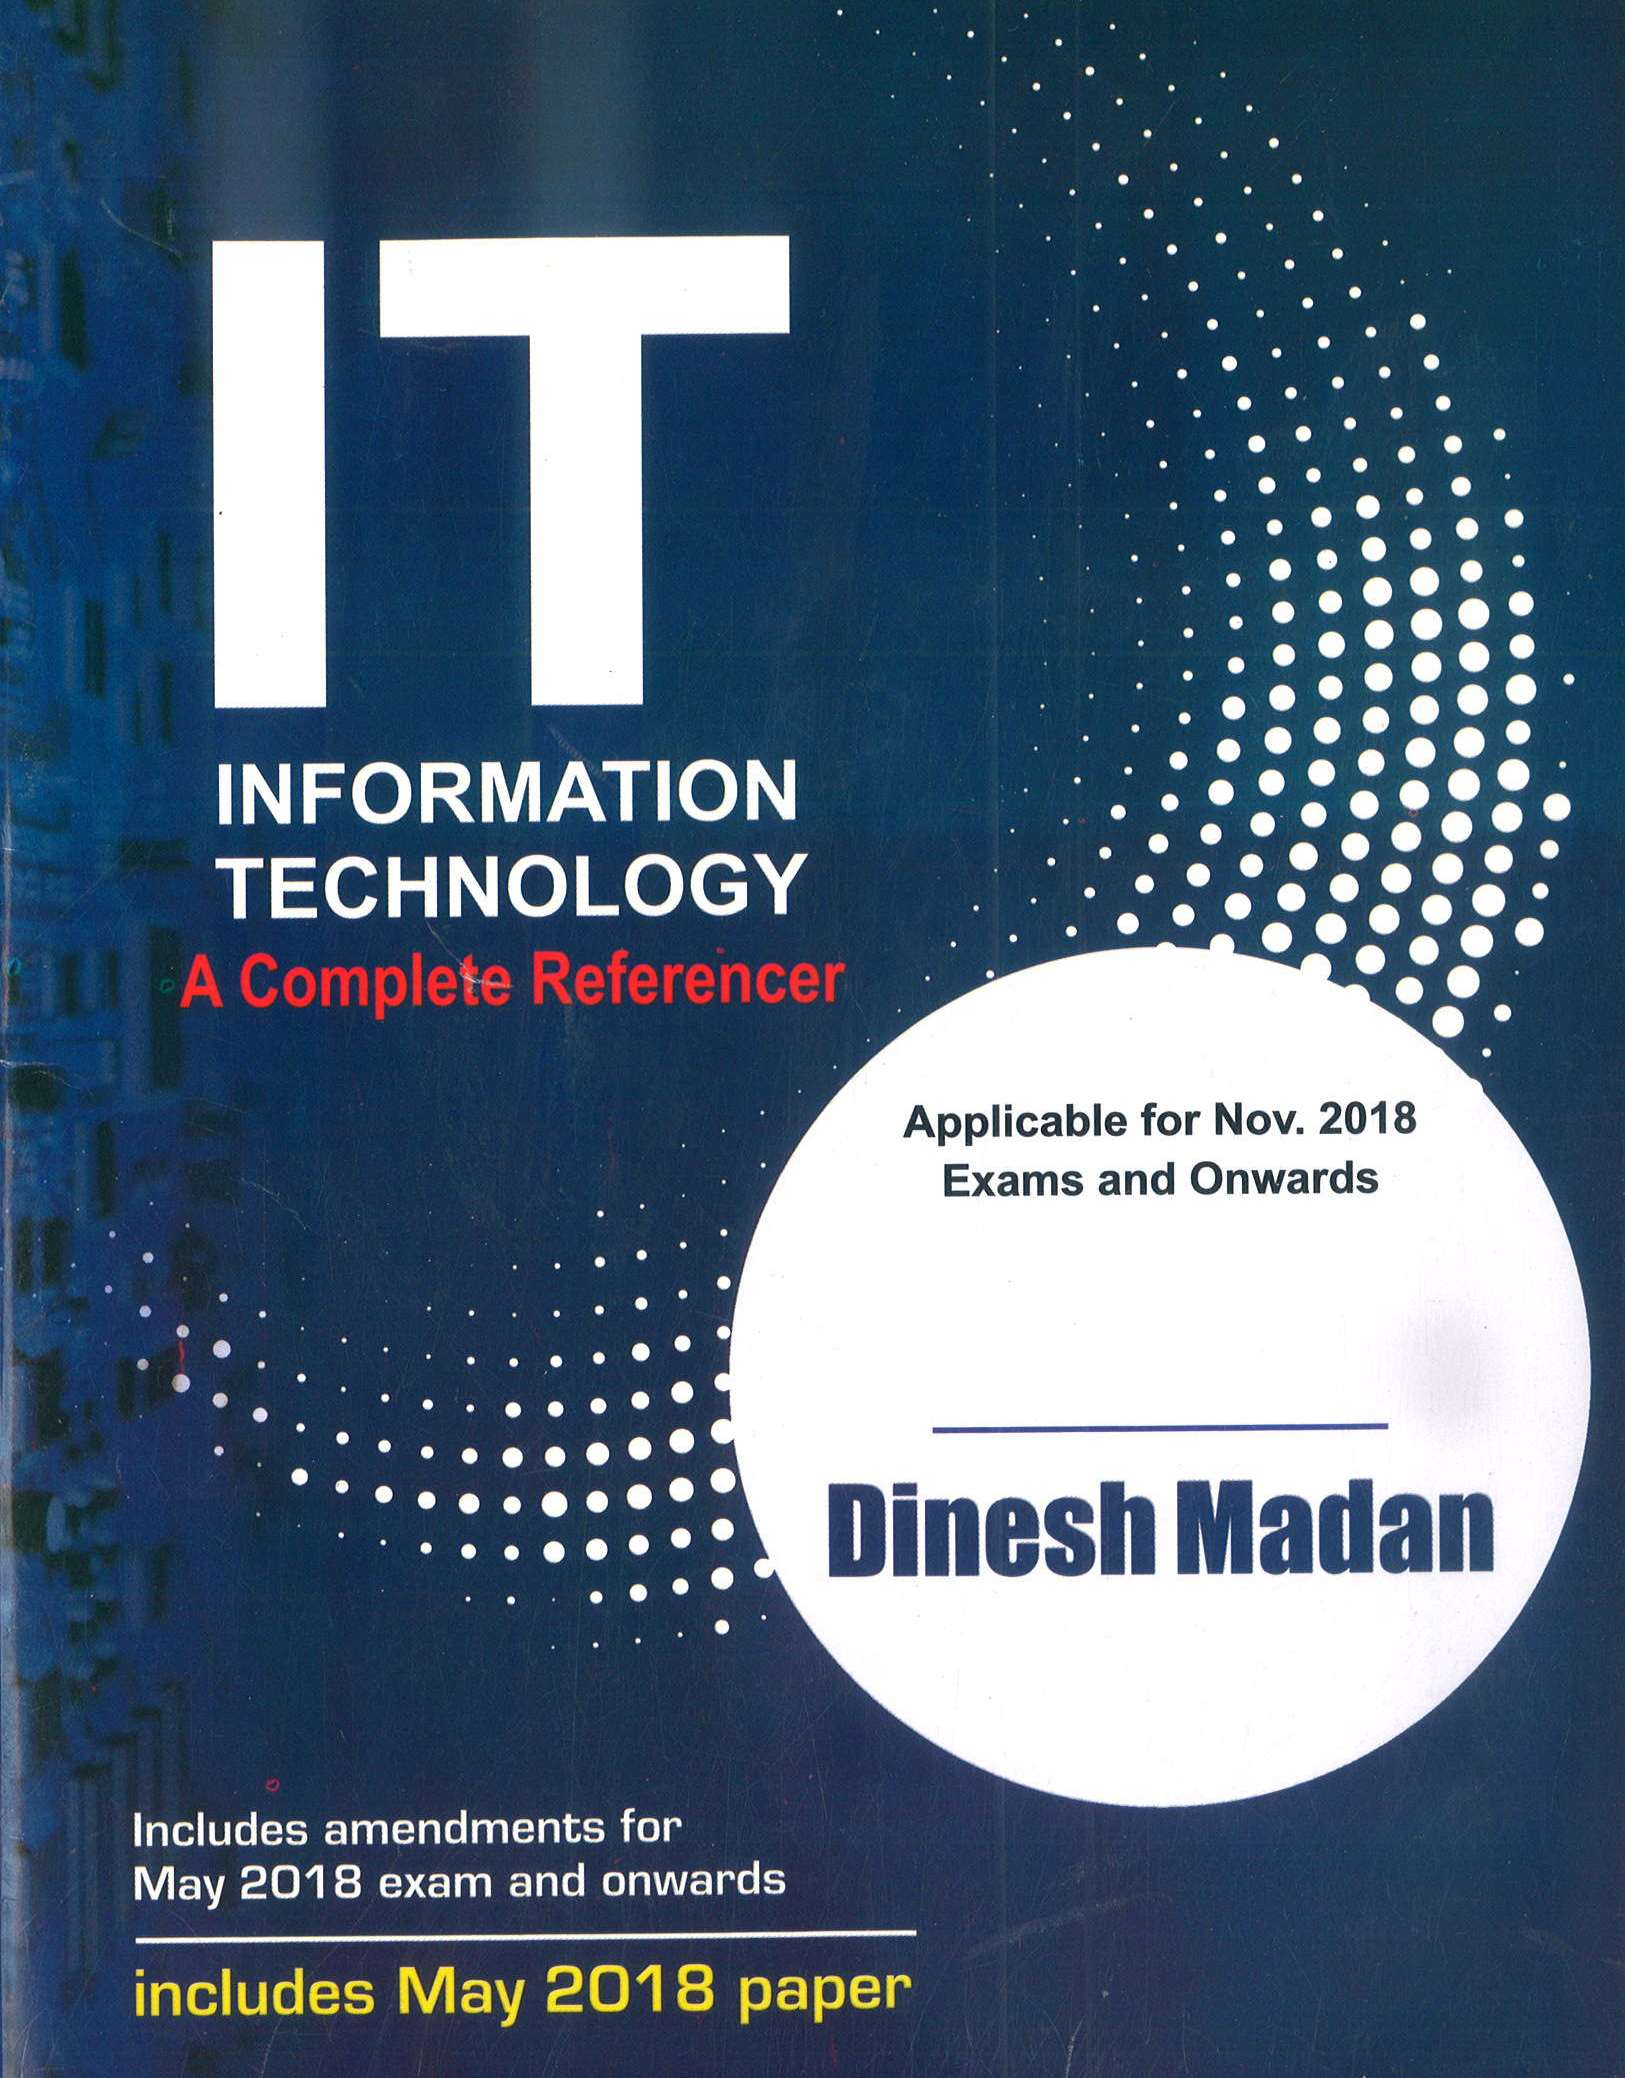 Pooja Law House A Complete Reference Information Technology For CA IPCC By Dinesh Madan Applicable for Nov 2018 Exam (Pooja Law House Publishing) Edition June 2018